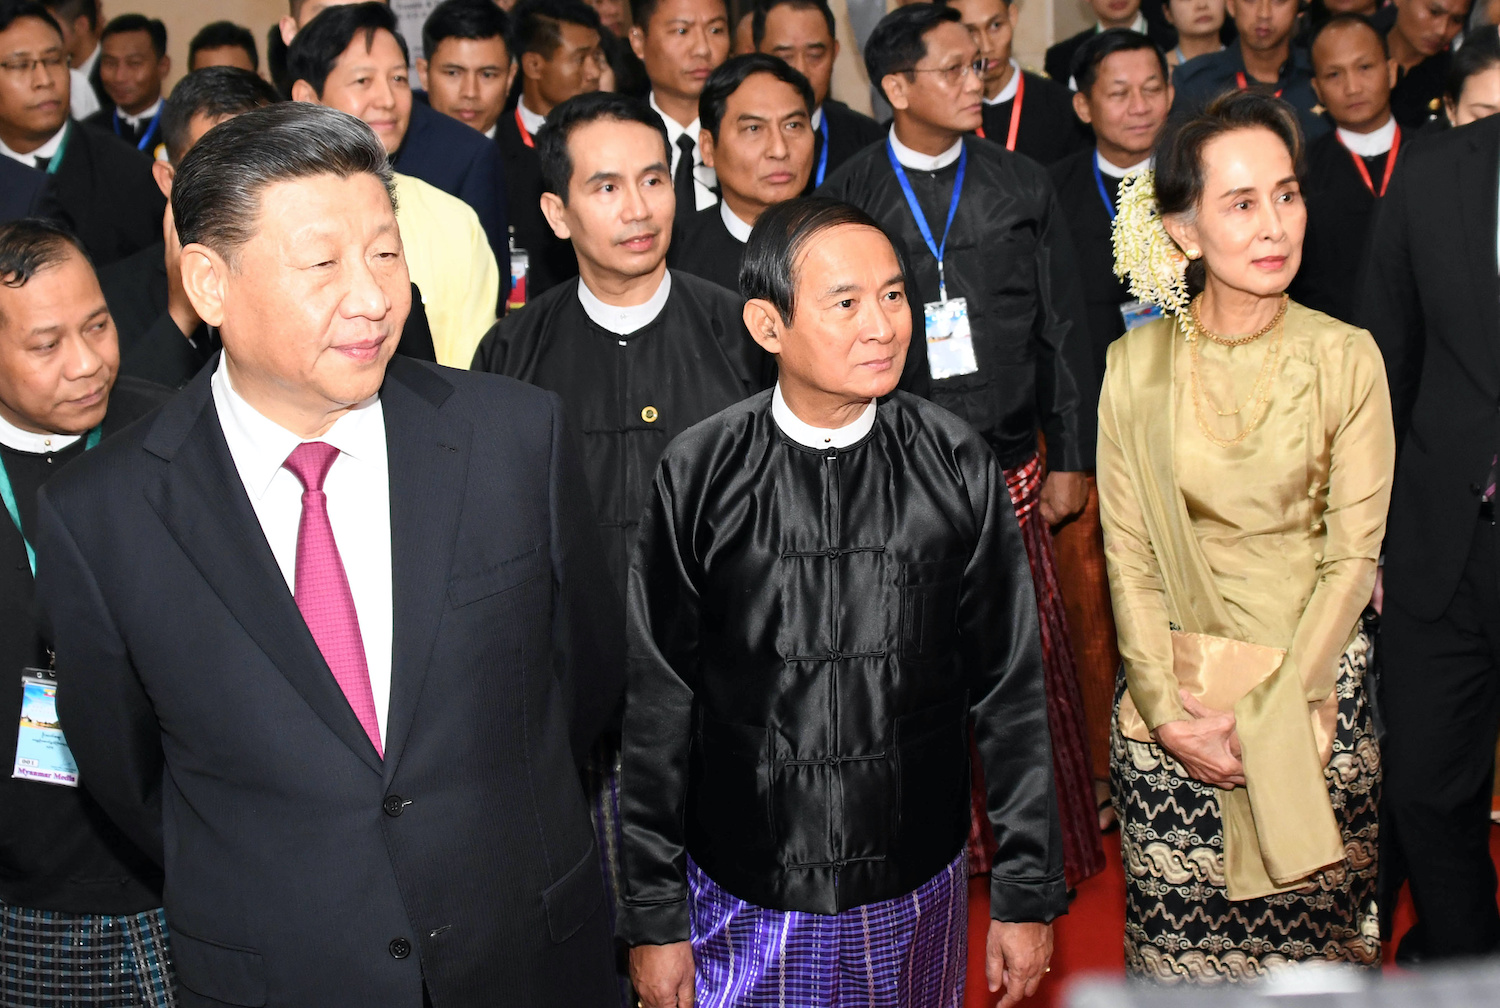 Chinese President Xi Jinping, Myanmar President Win Myint and State Counsellor Aung San Suu Kyi attend a cermony marking the 70th anniversary of diplomatic relations between the two countries in Nay Pyi Taw on Saturday. (Myanmar News Agency/Pool via Reuters)